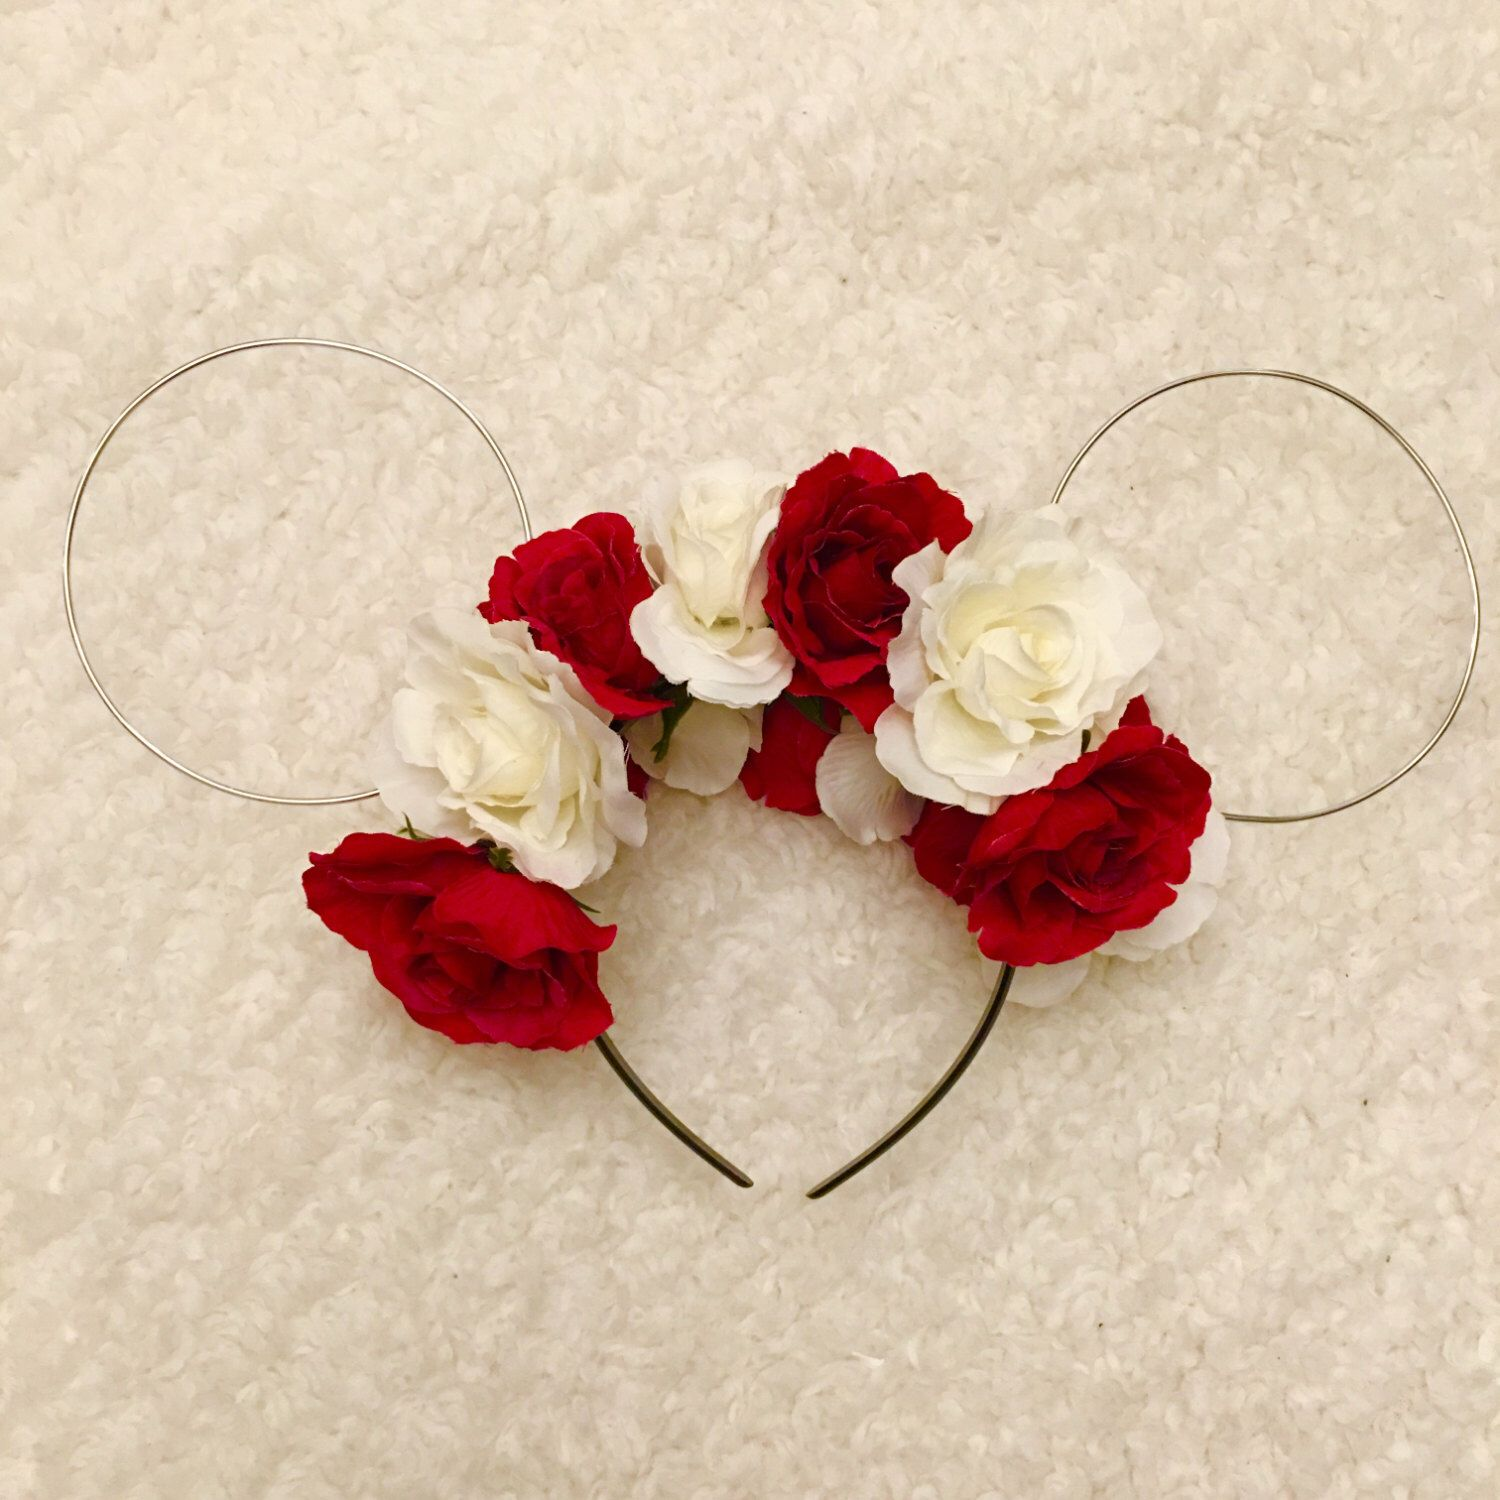 Wire mickey ear flower crown by dylansdisdesigns on etsy httpswww wire mickey ear flower crown by dylansdisdesigns on etsy httpsetsy izmirmasajfo Images